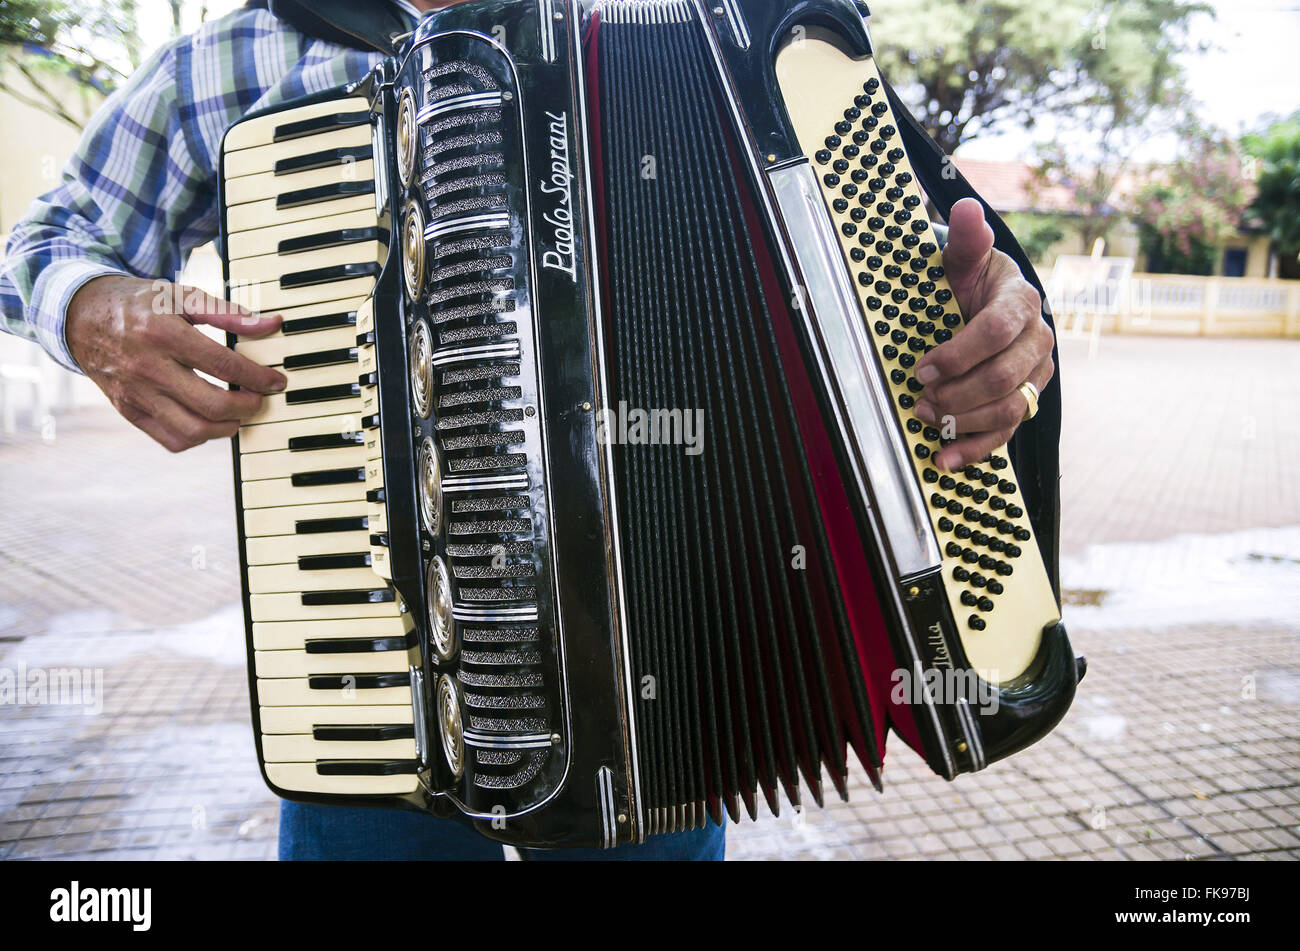 Accordion being played by musician - Stock Image